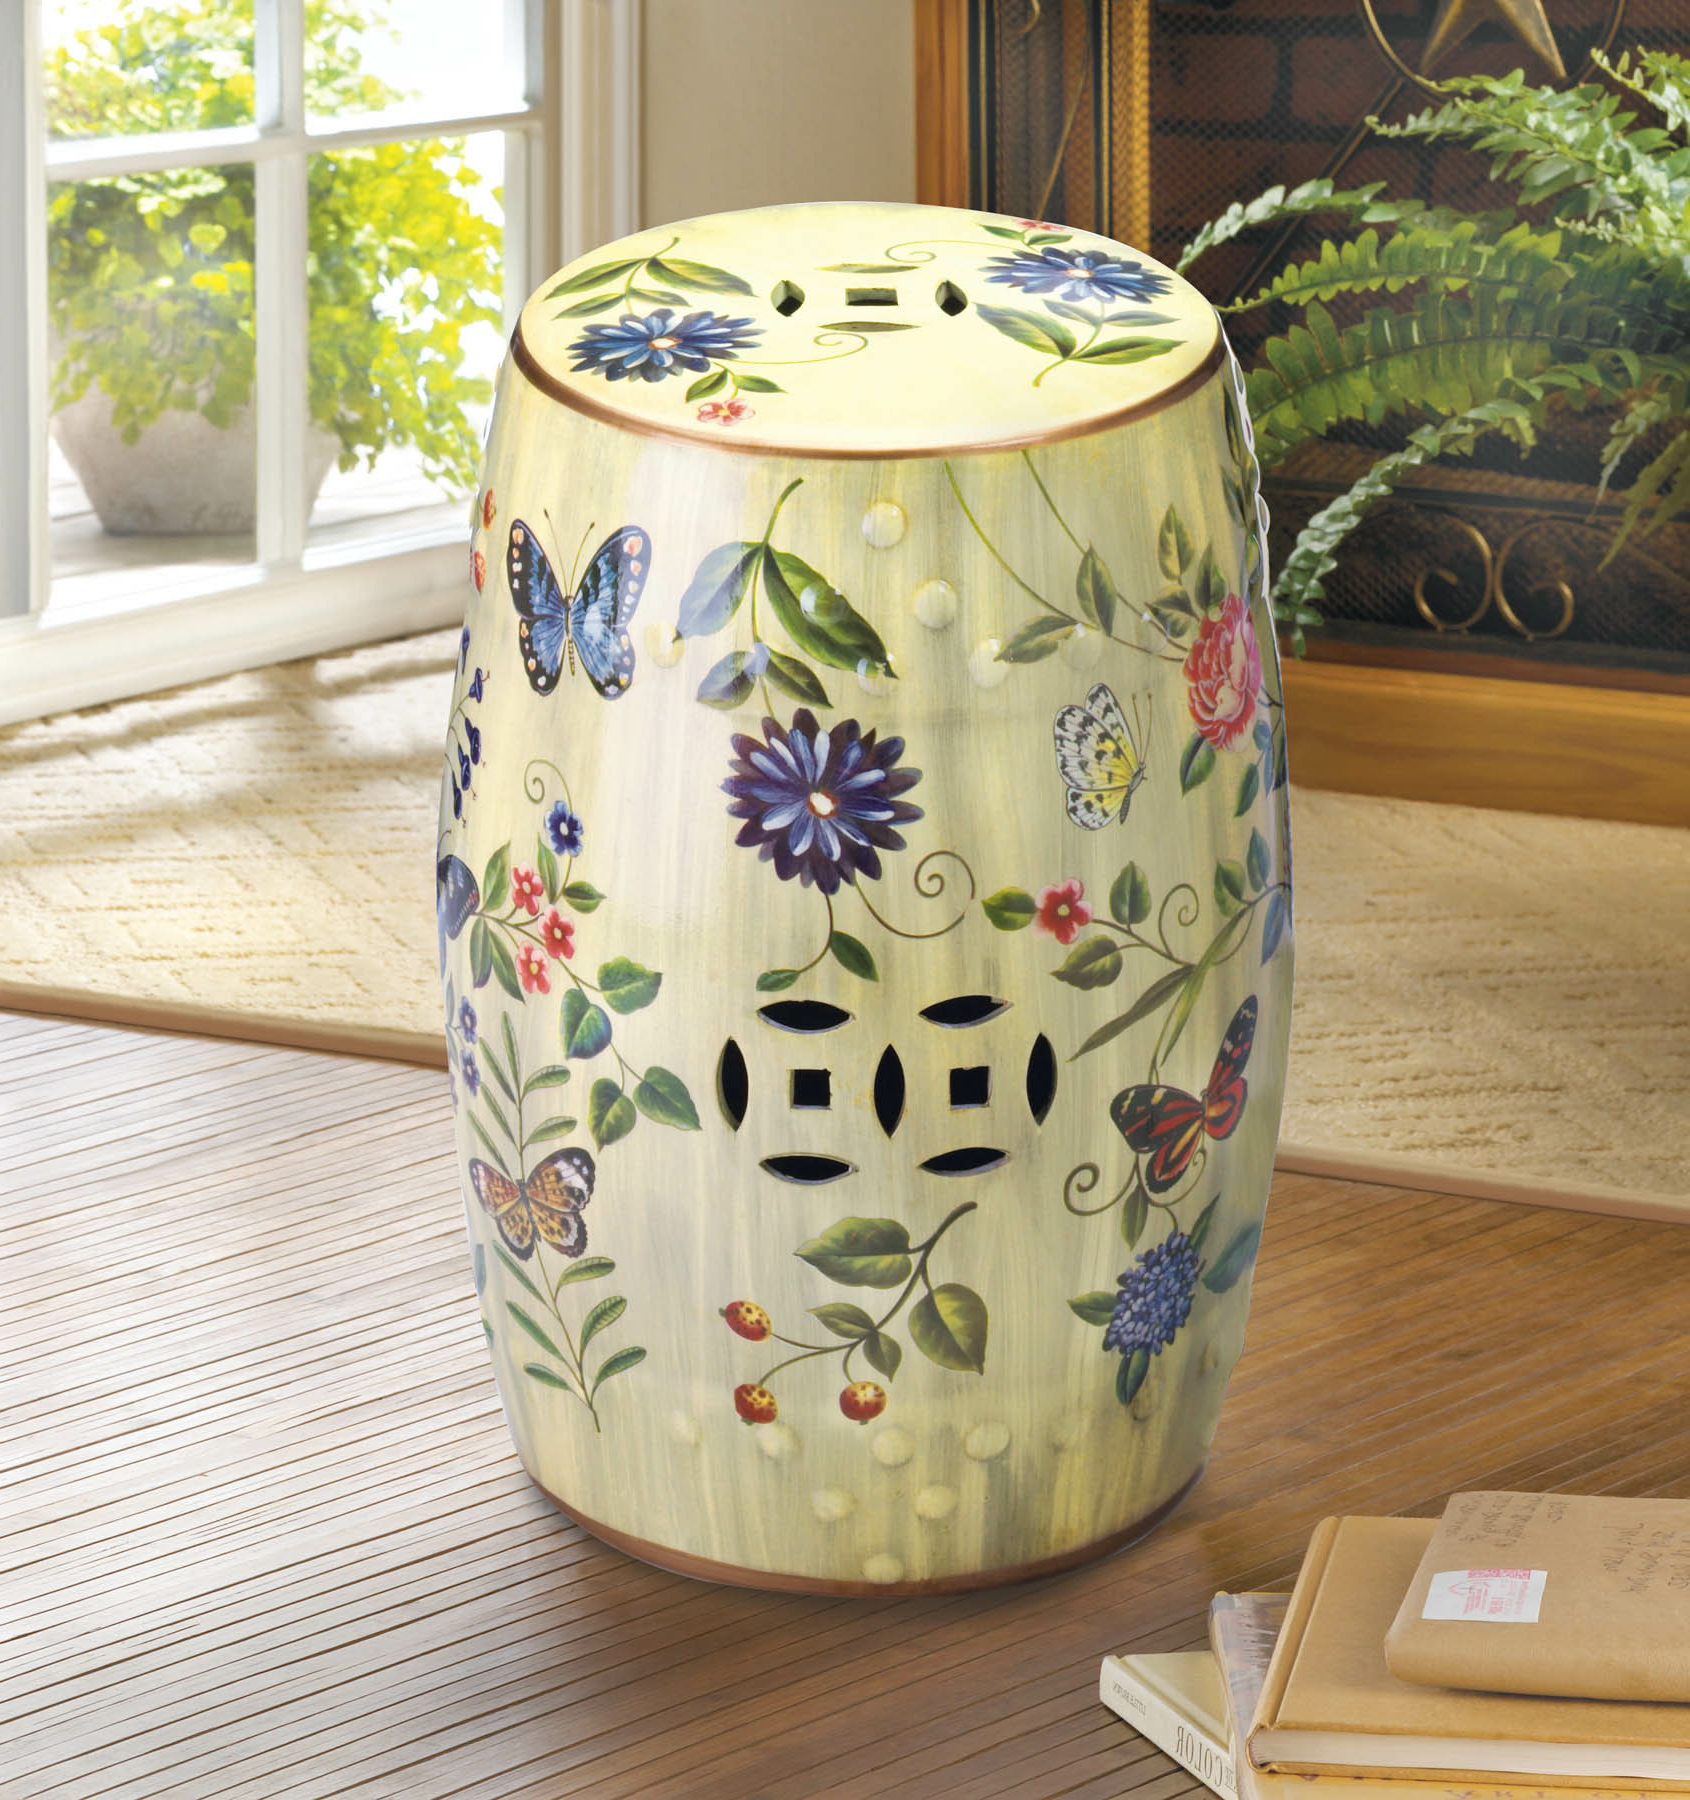 Wiese Cherry Blossom Ceramic Garden Stools With Fashionable Ceramic Table Stools (View 12 of 30)